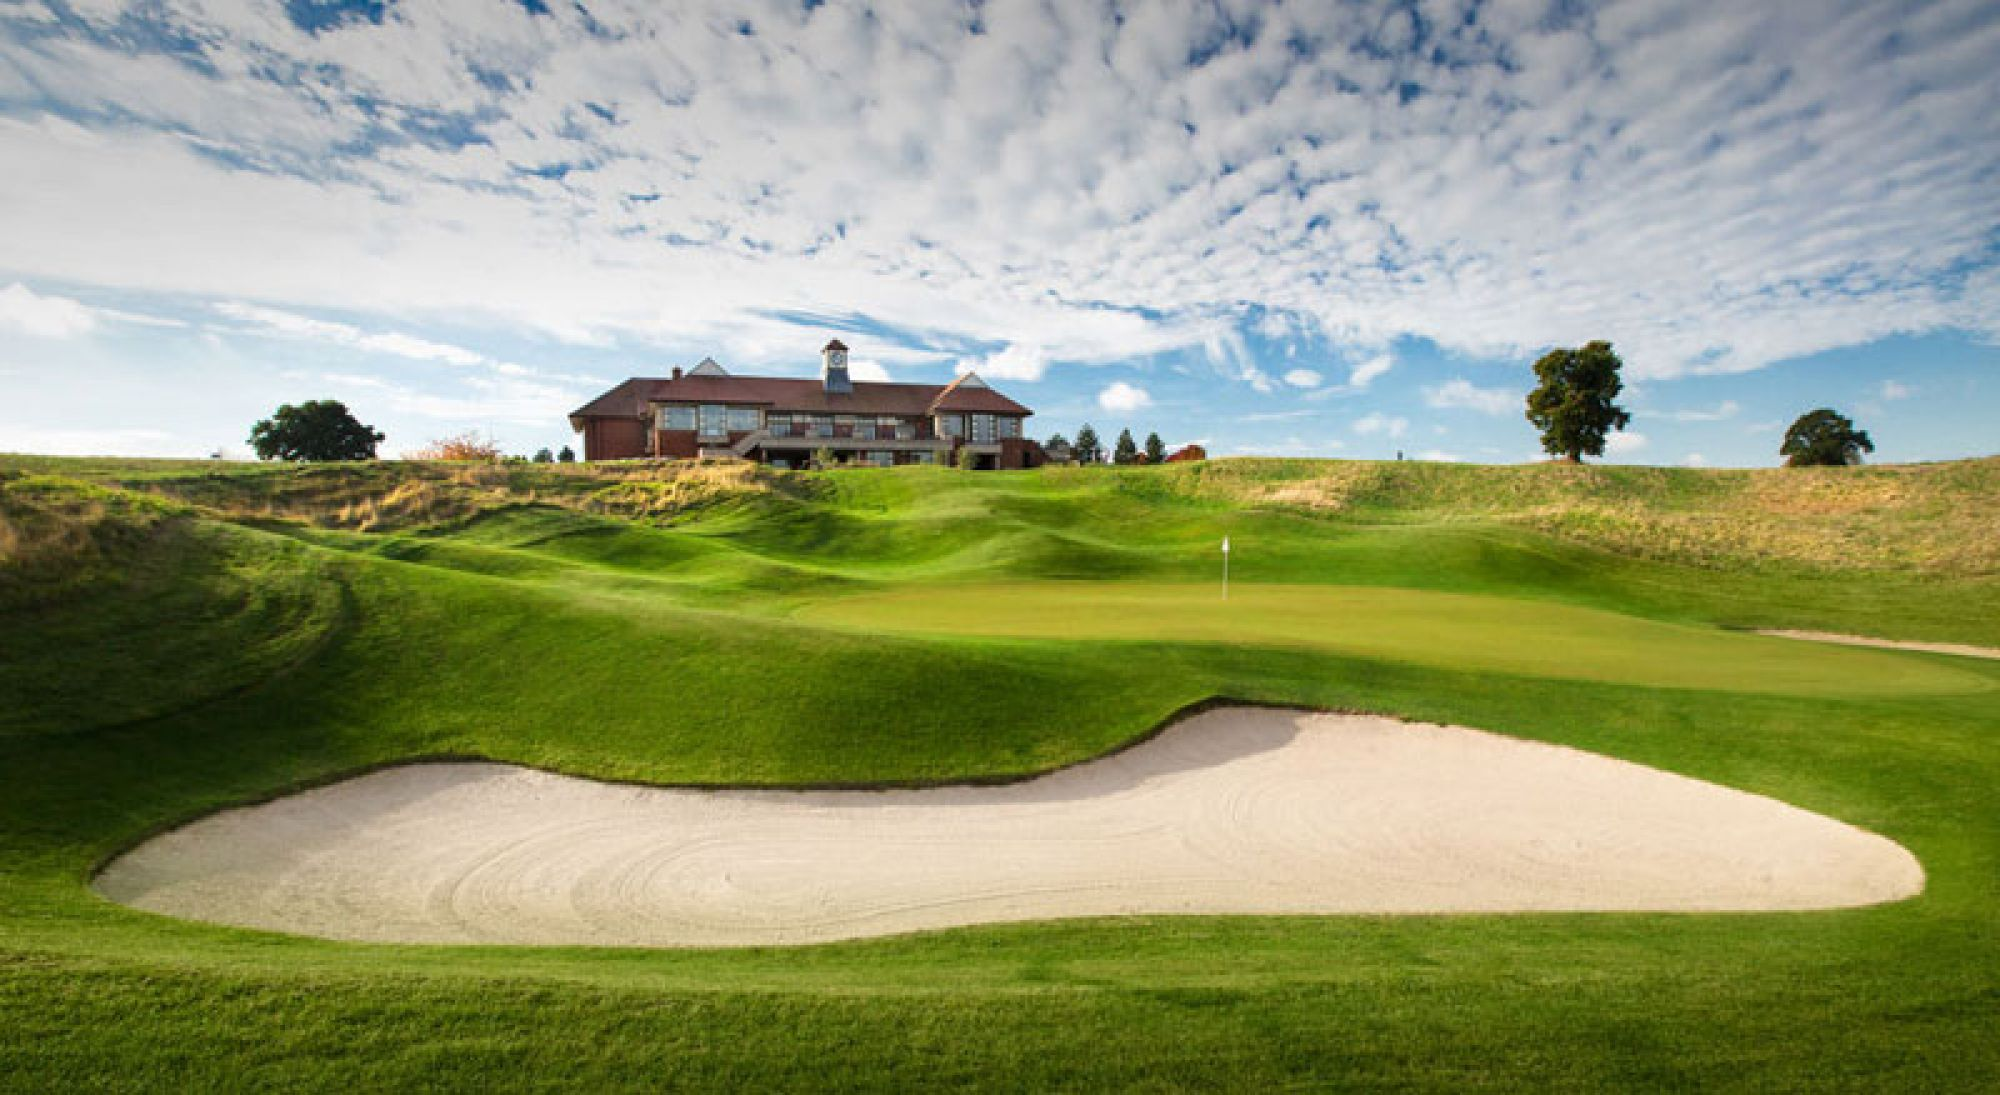 View The Oxfordshire Golf Club's beautiful golf course situated in amazing Oxfordshire.